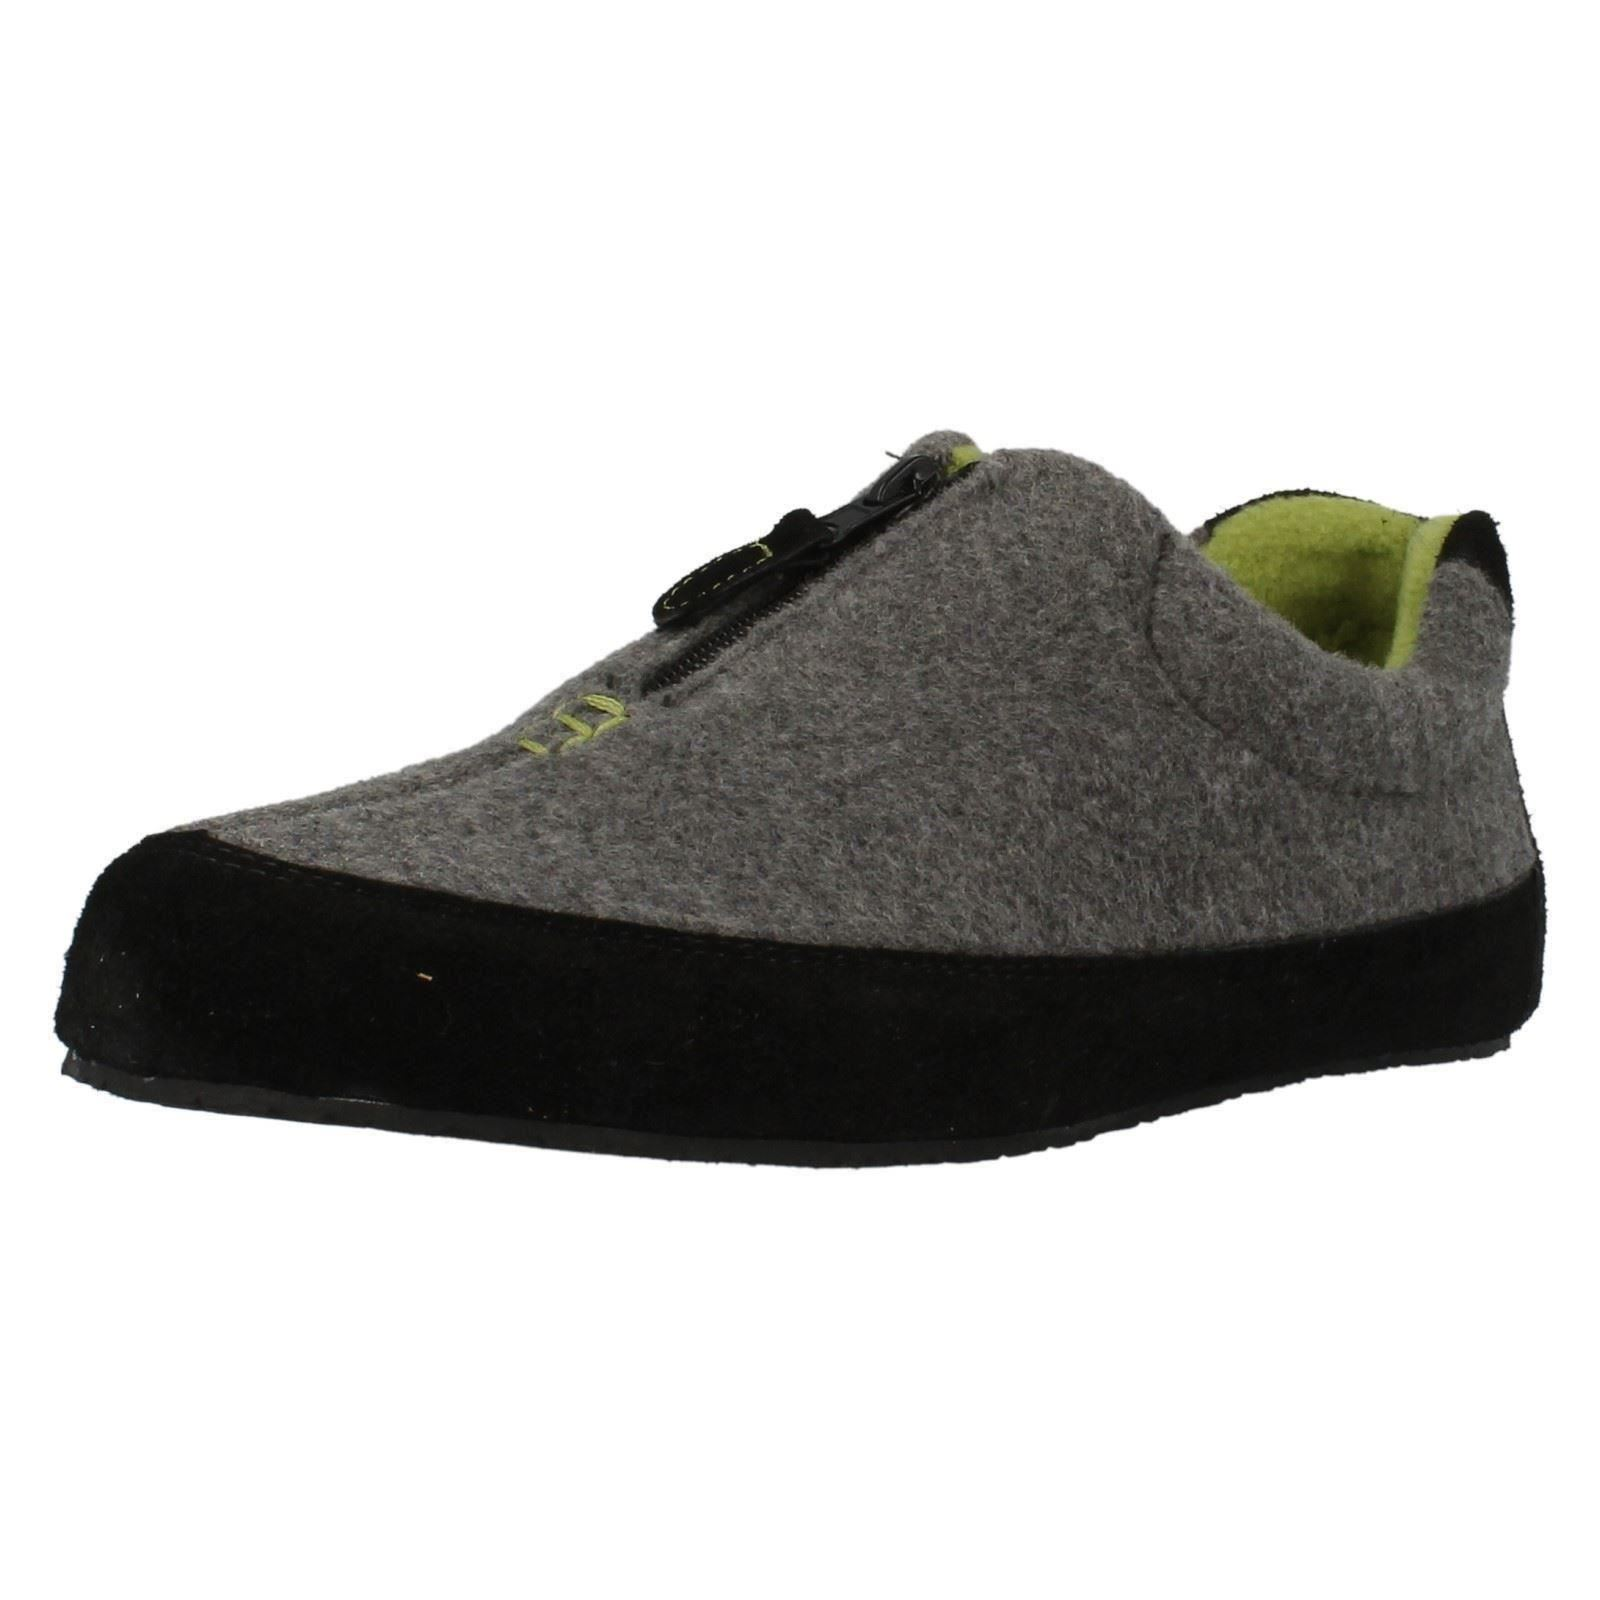 Varieties of mens zip up slippers are offered on NewChic with good service and fast delivery, buy cheap mens zip up slippers now!